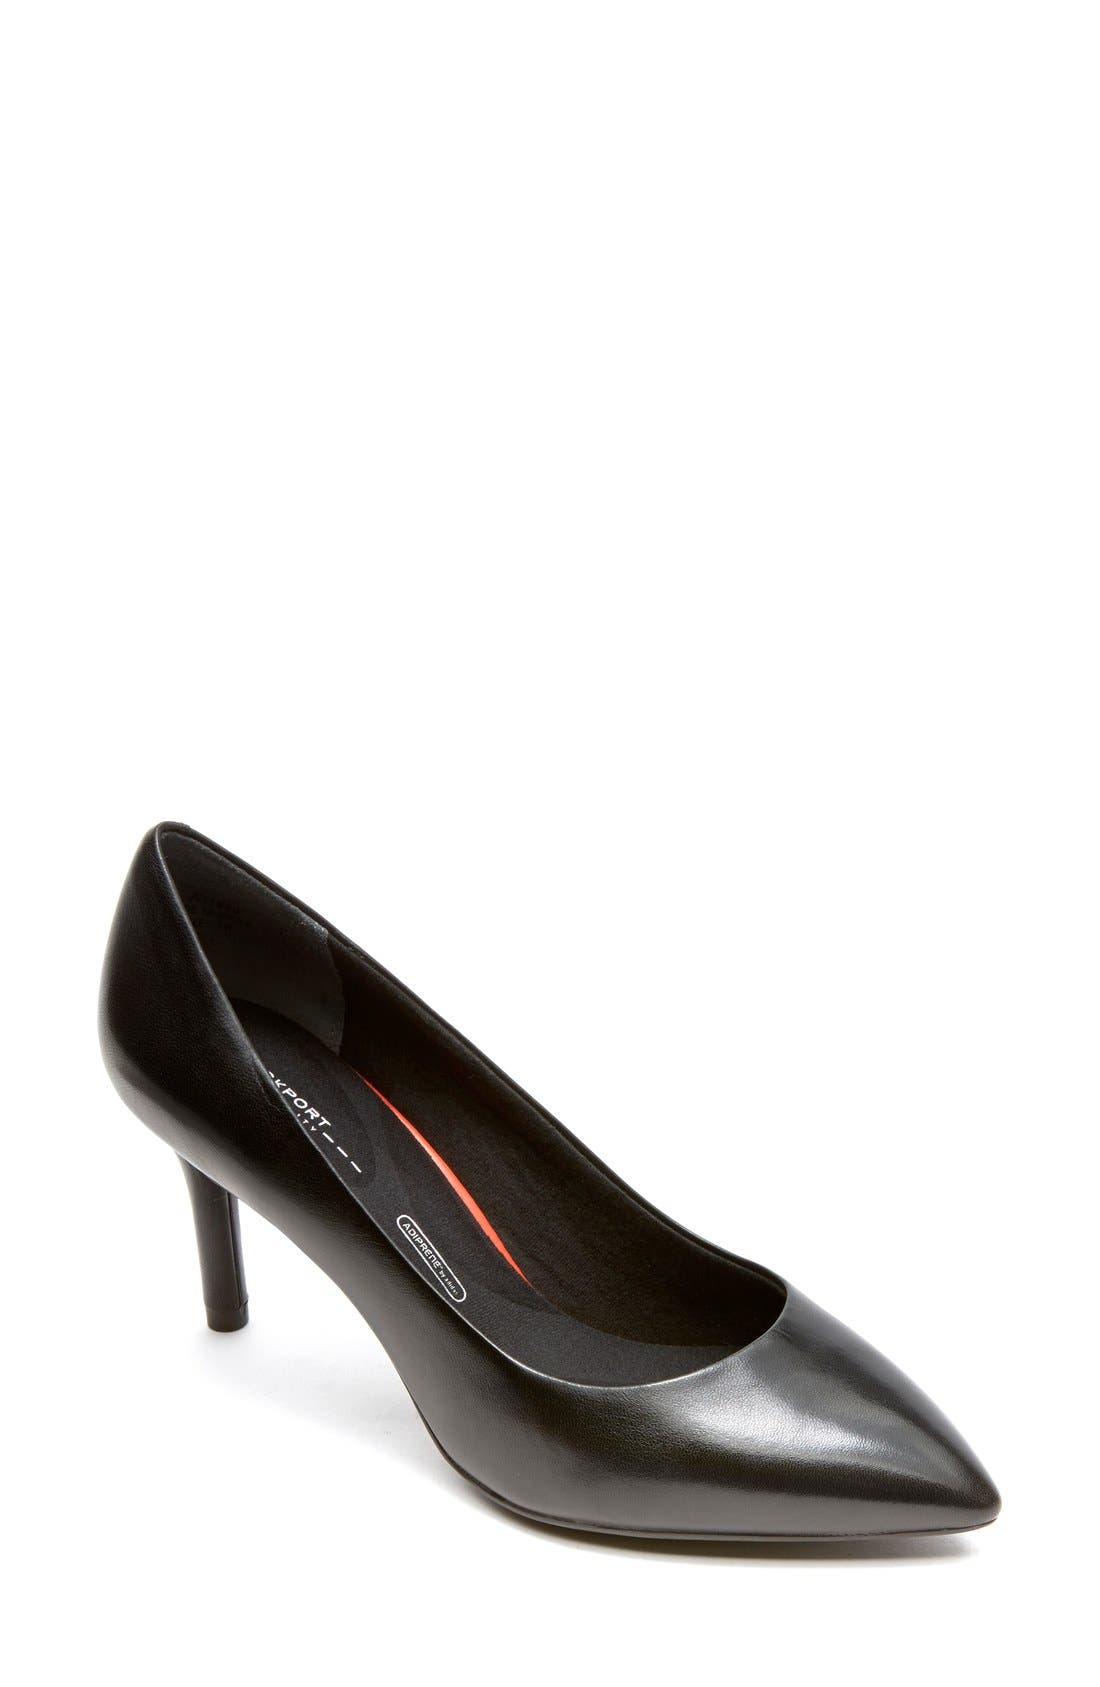 ROCKPORT 'Total Motion' Pump